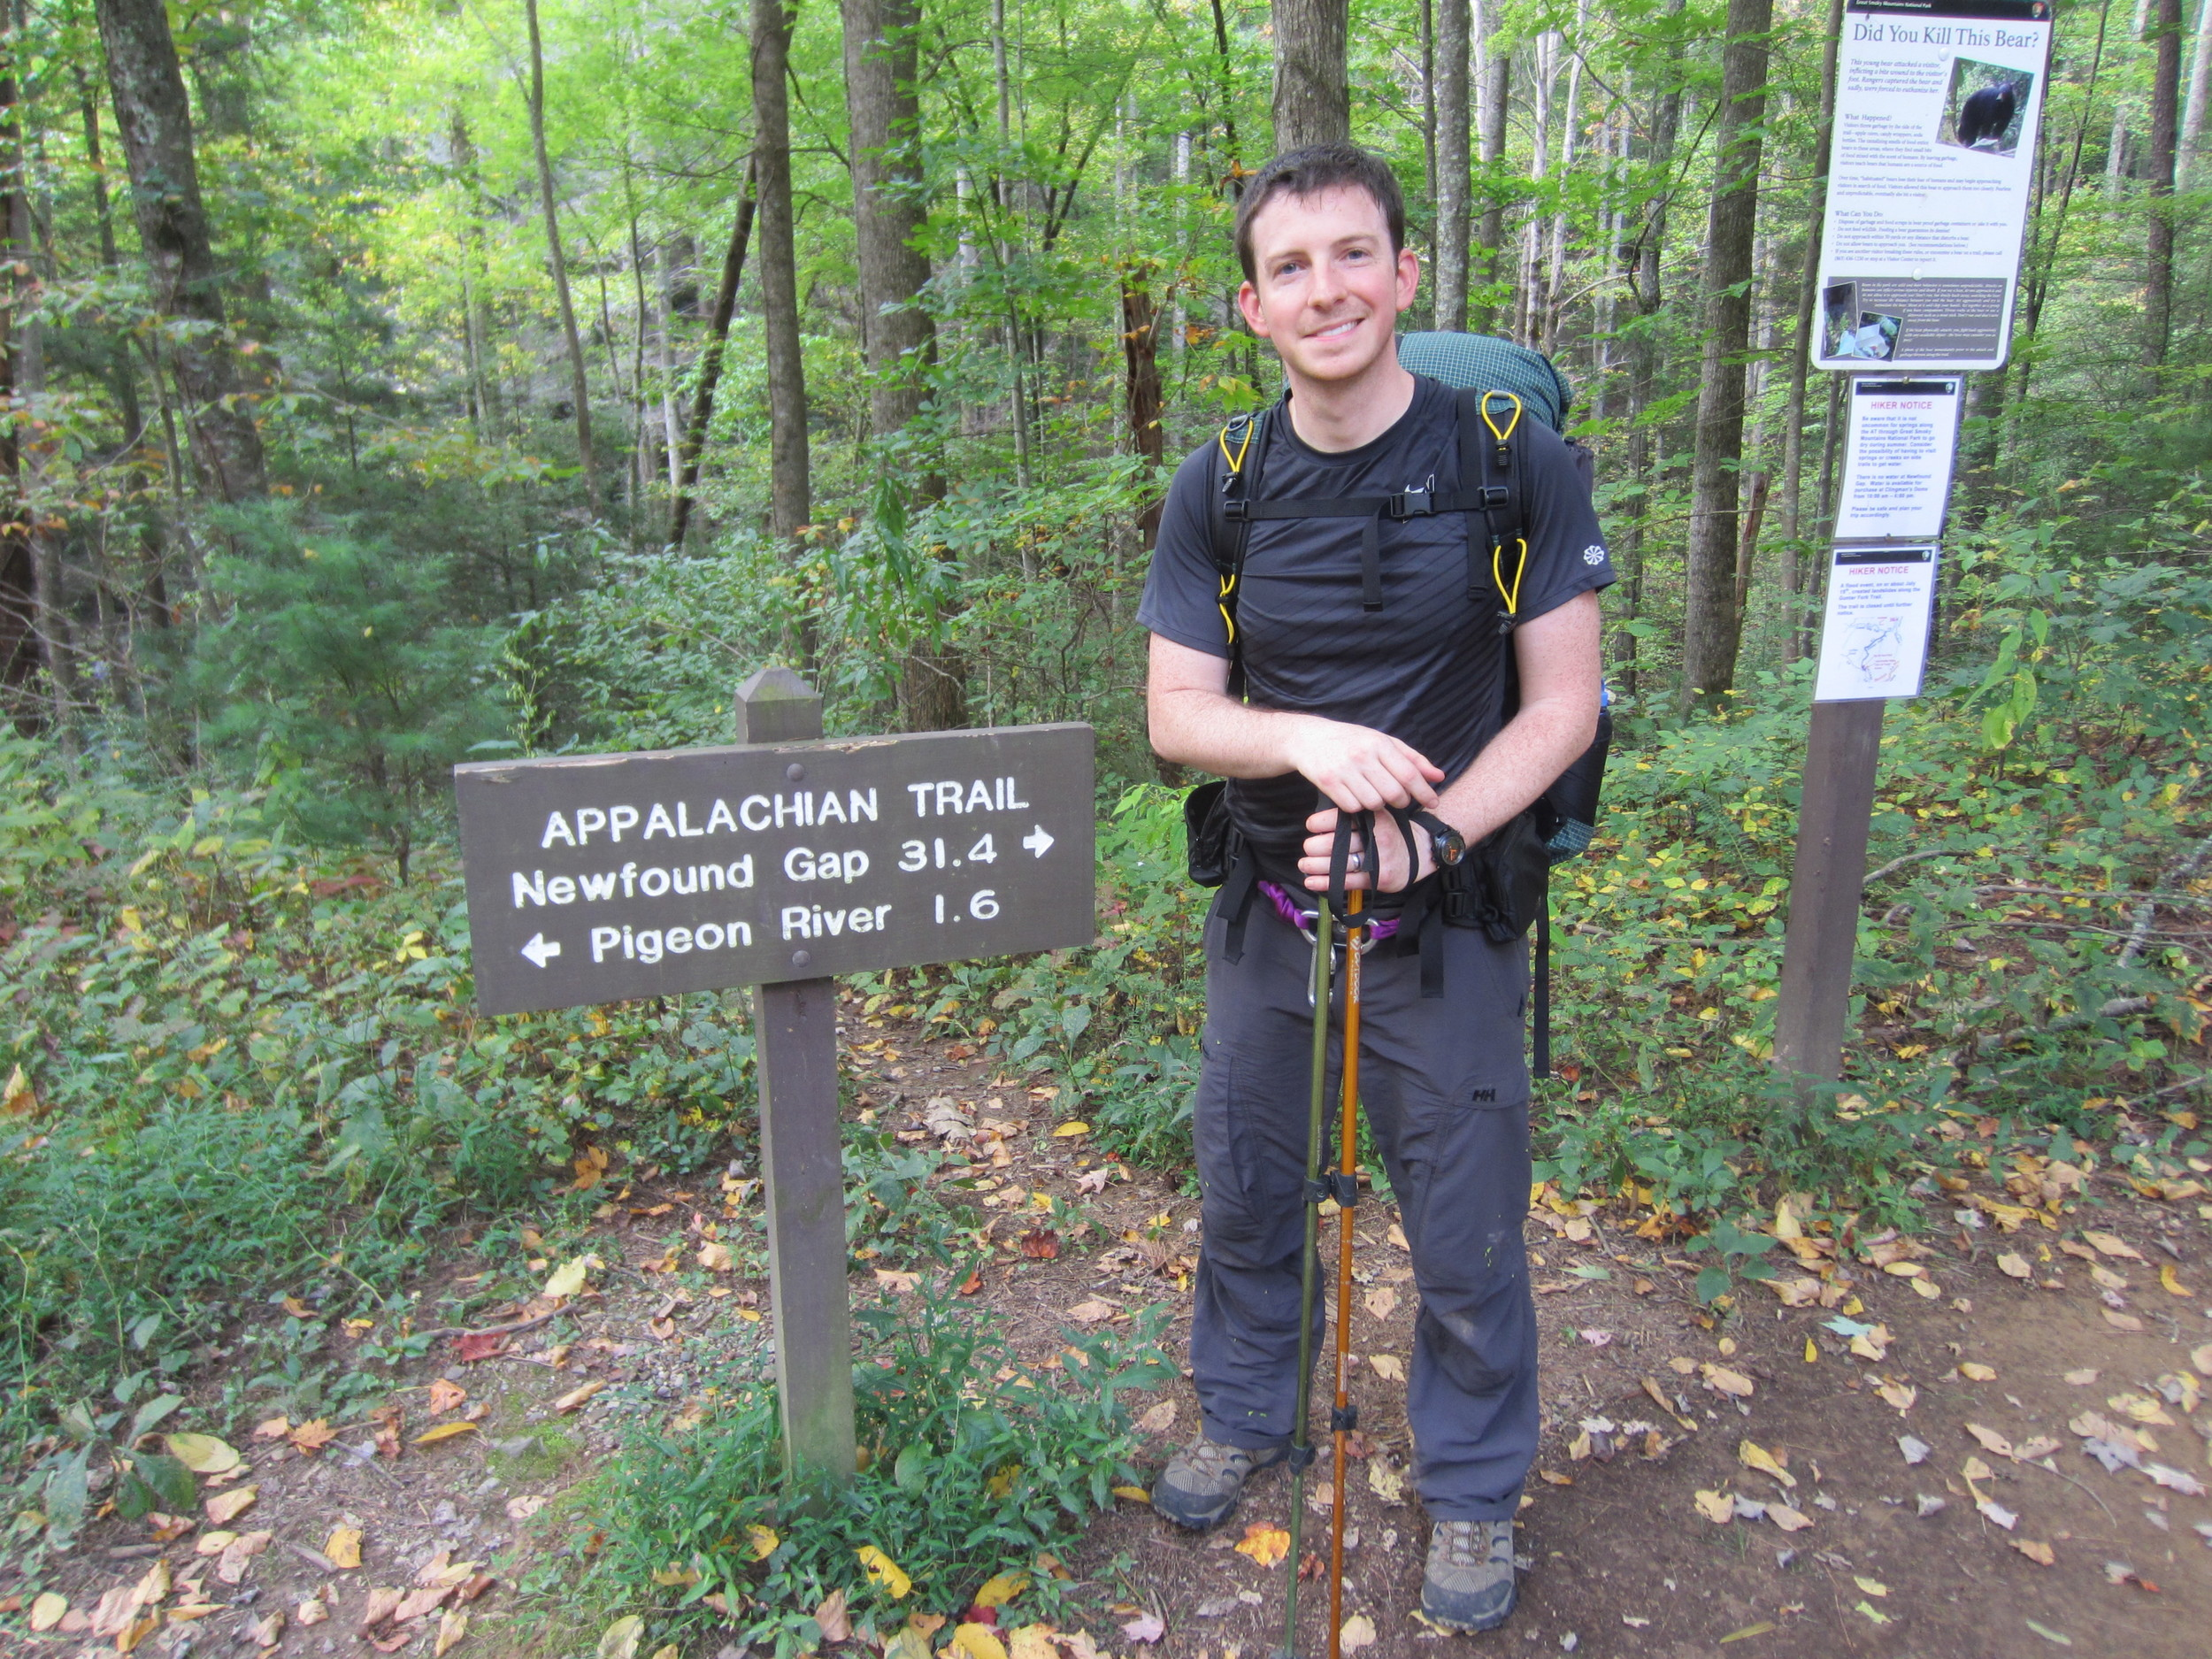 Appalachian Trail - Hot Springs, NC to Davenport Gap, NC